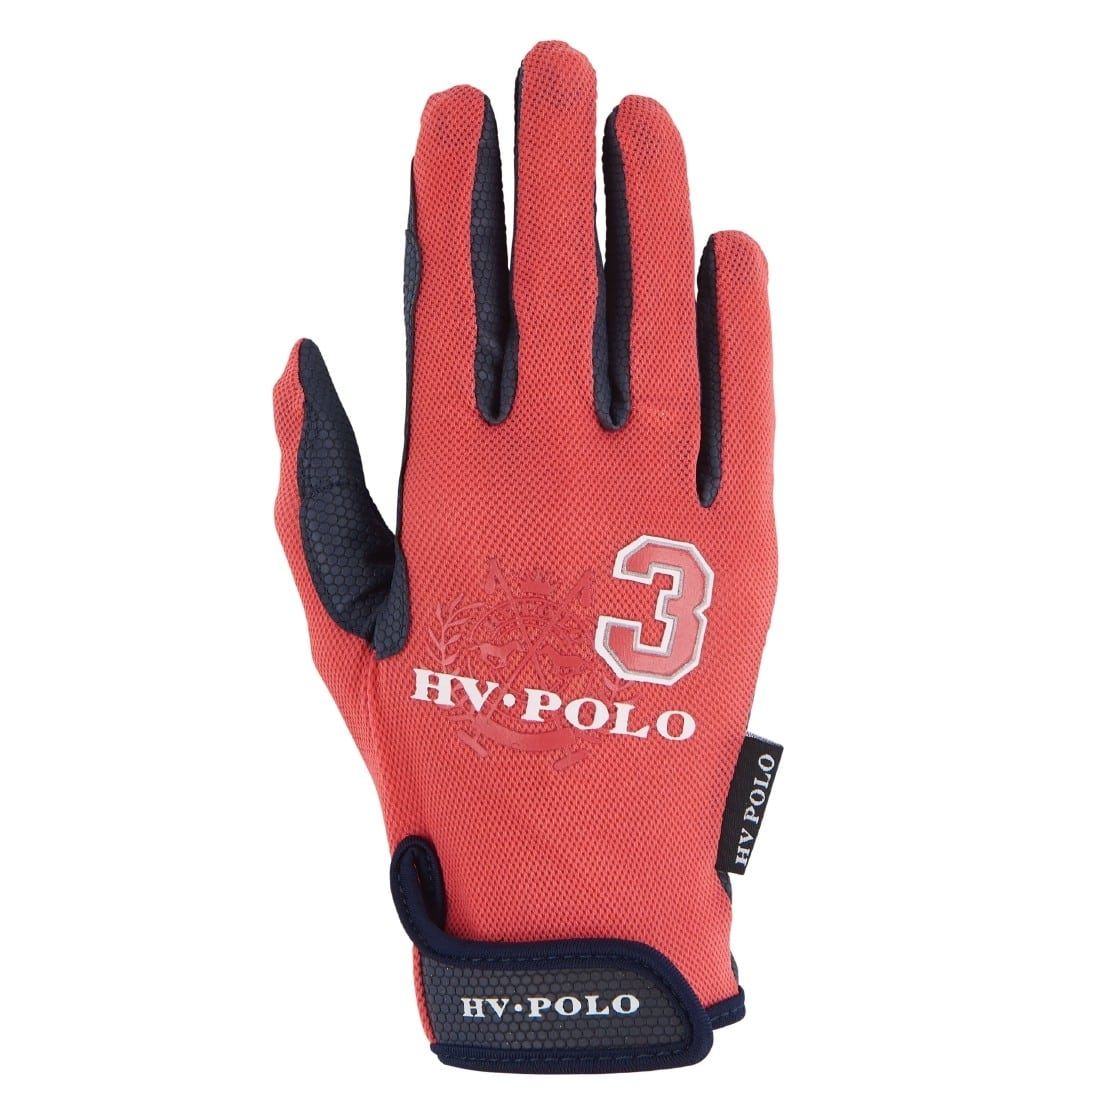 Handschuhe Favouritas M Bright Coral